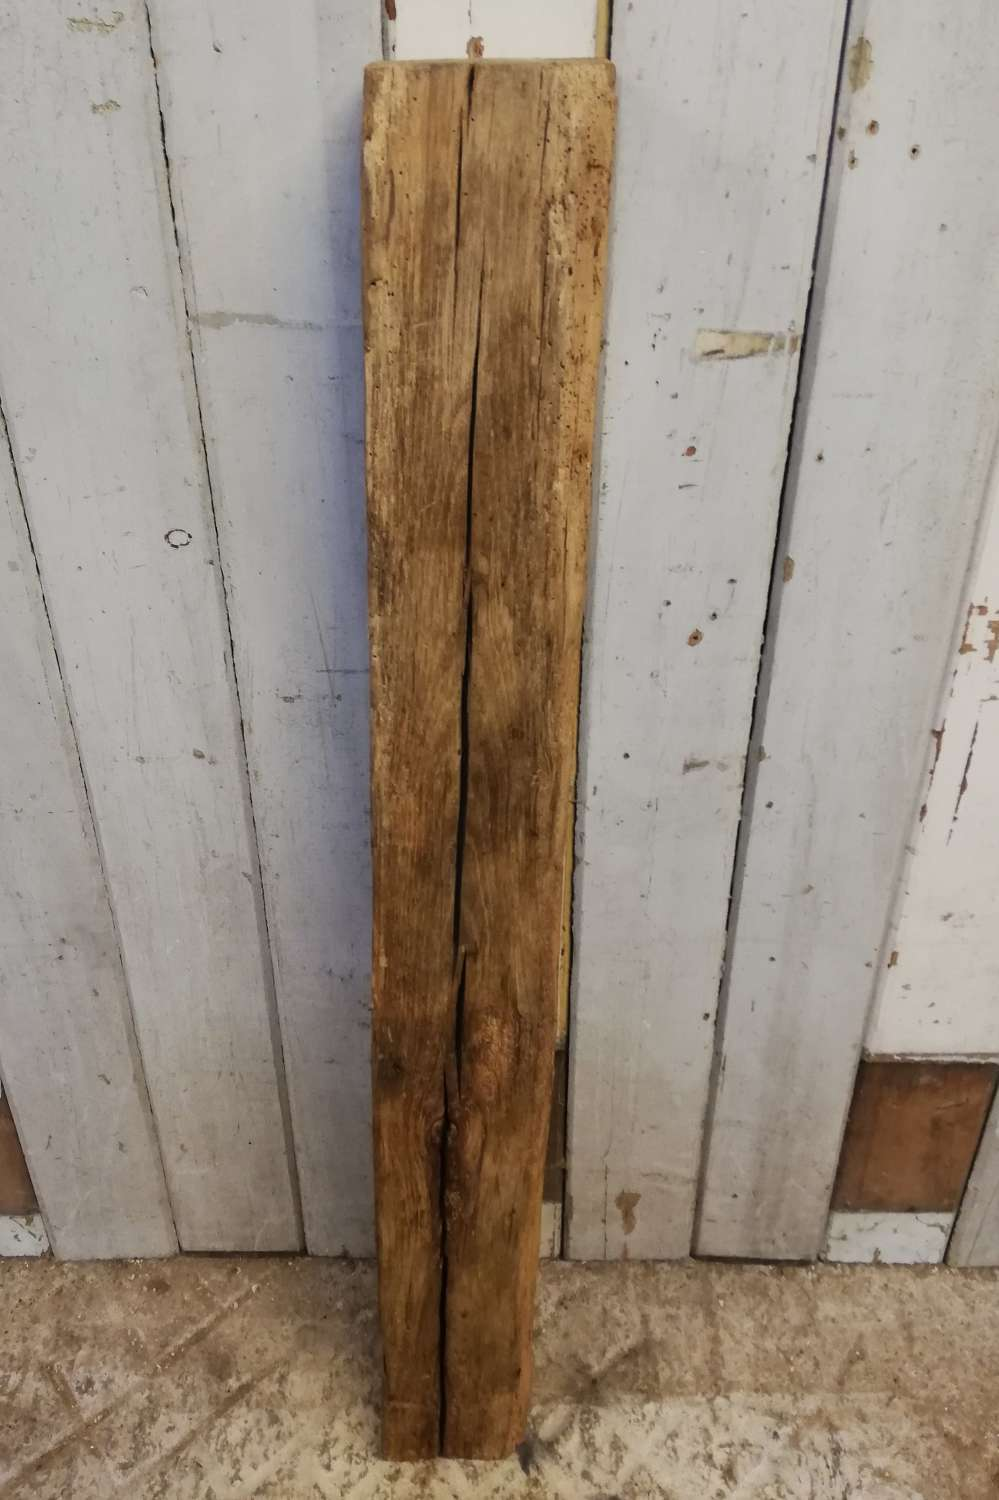 M1345 AGED WAXED OAK BEAM FOR RUSTIC PROJECT